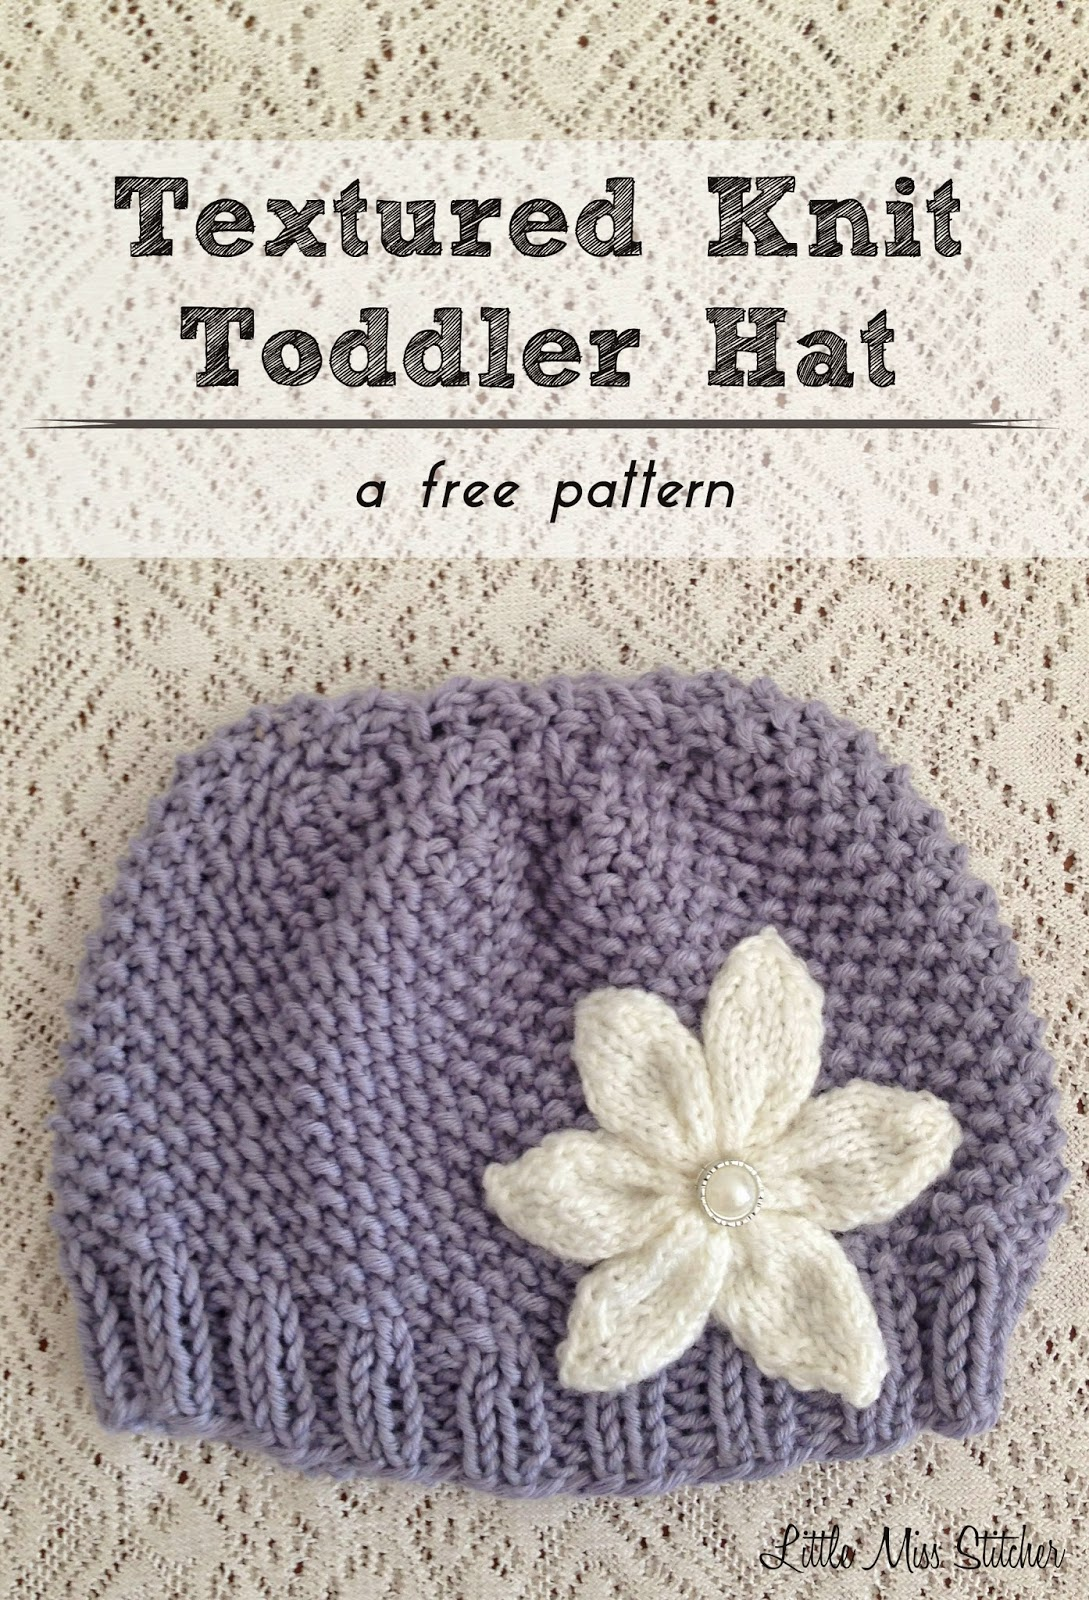 Knitting Pattern Hat Size 9 Needles : Little Miss Stitcher: Textured Knit Toddler Hat Free Pattern